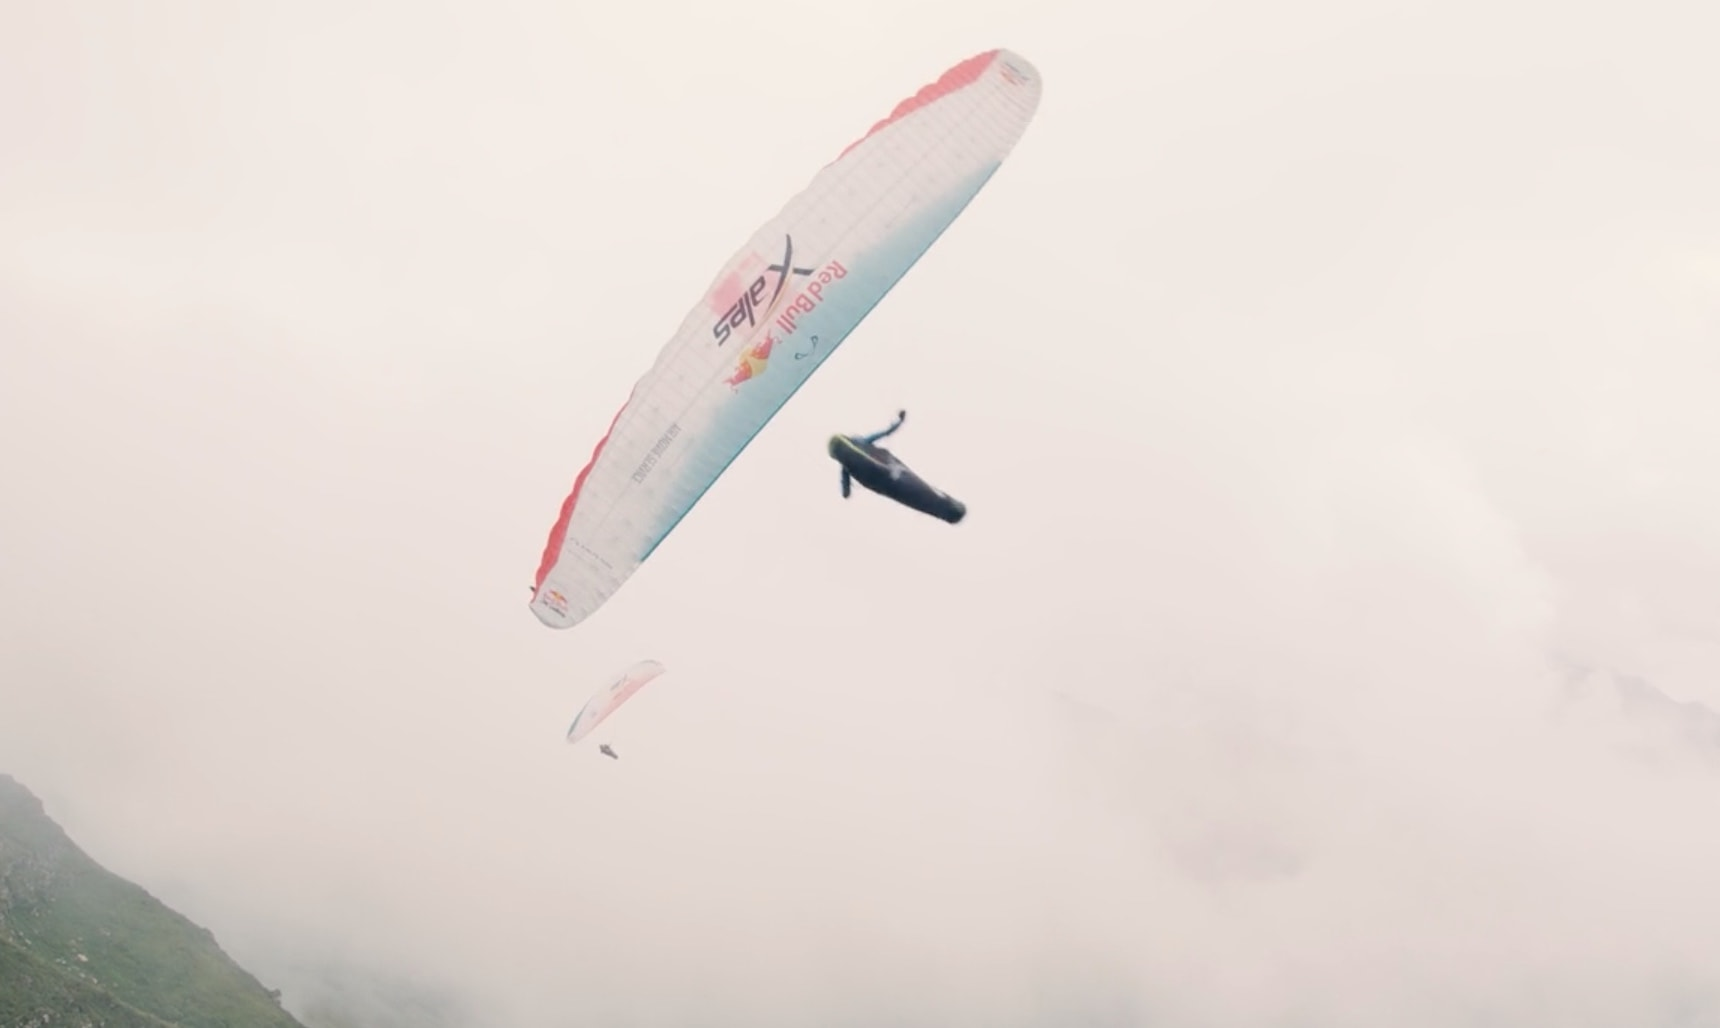 A paraglider flying through the misty sky